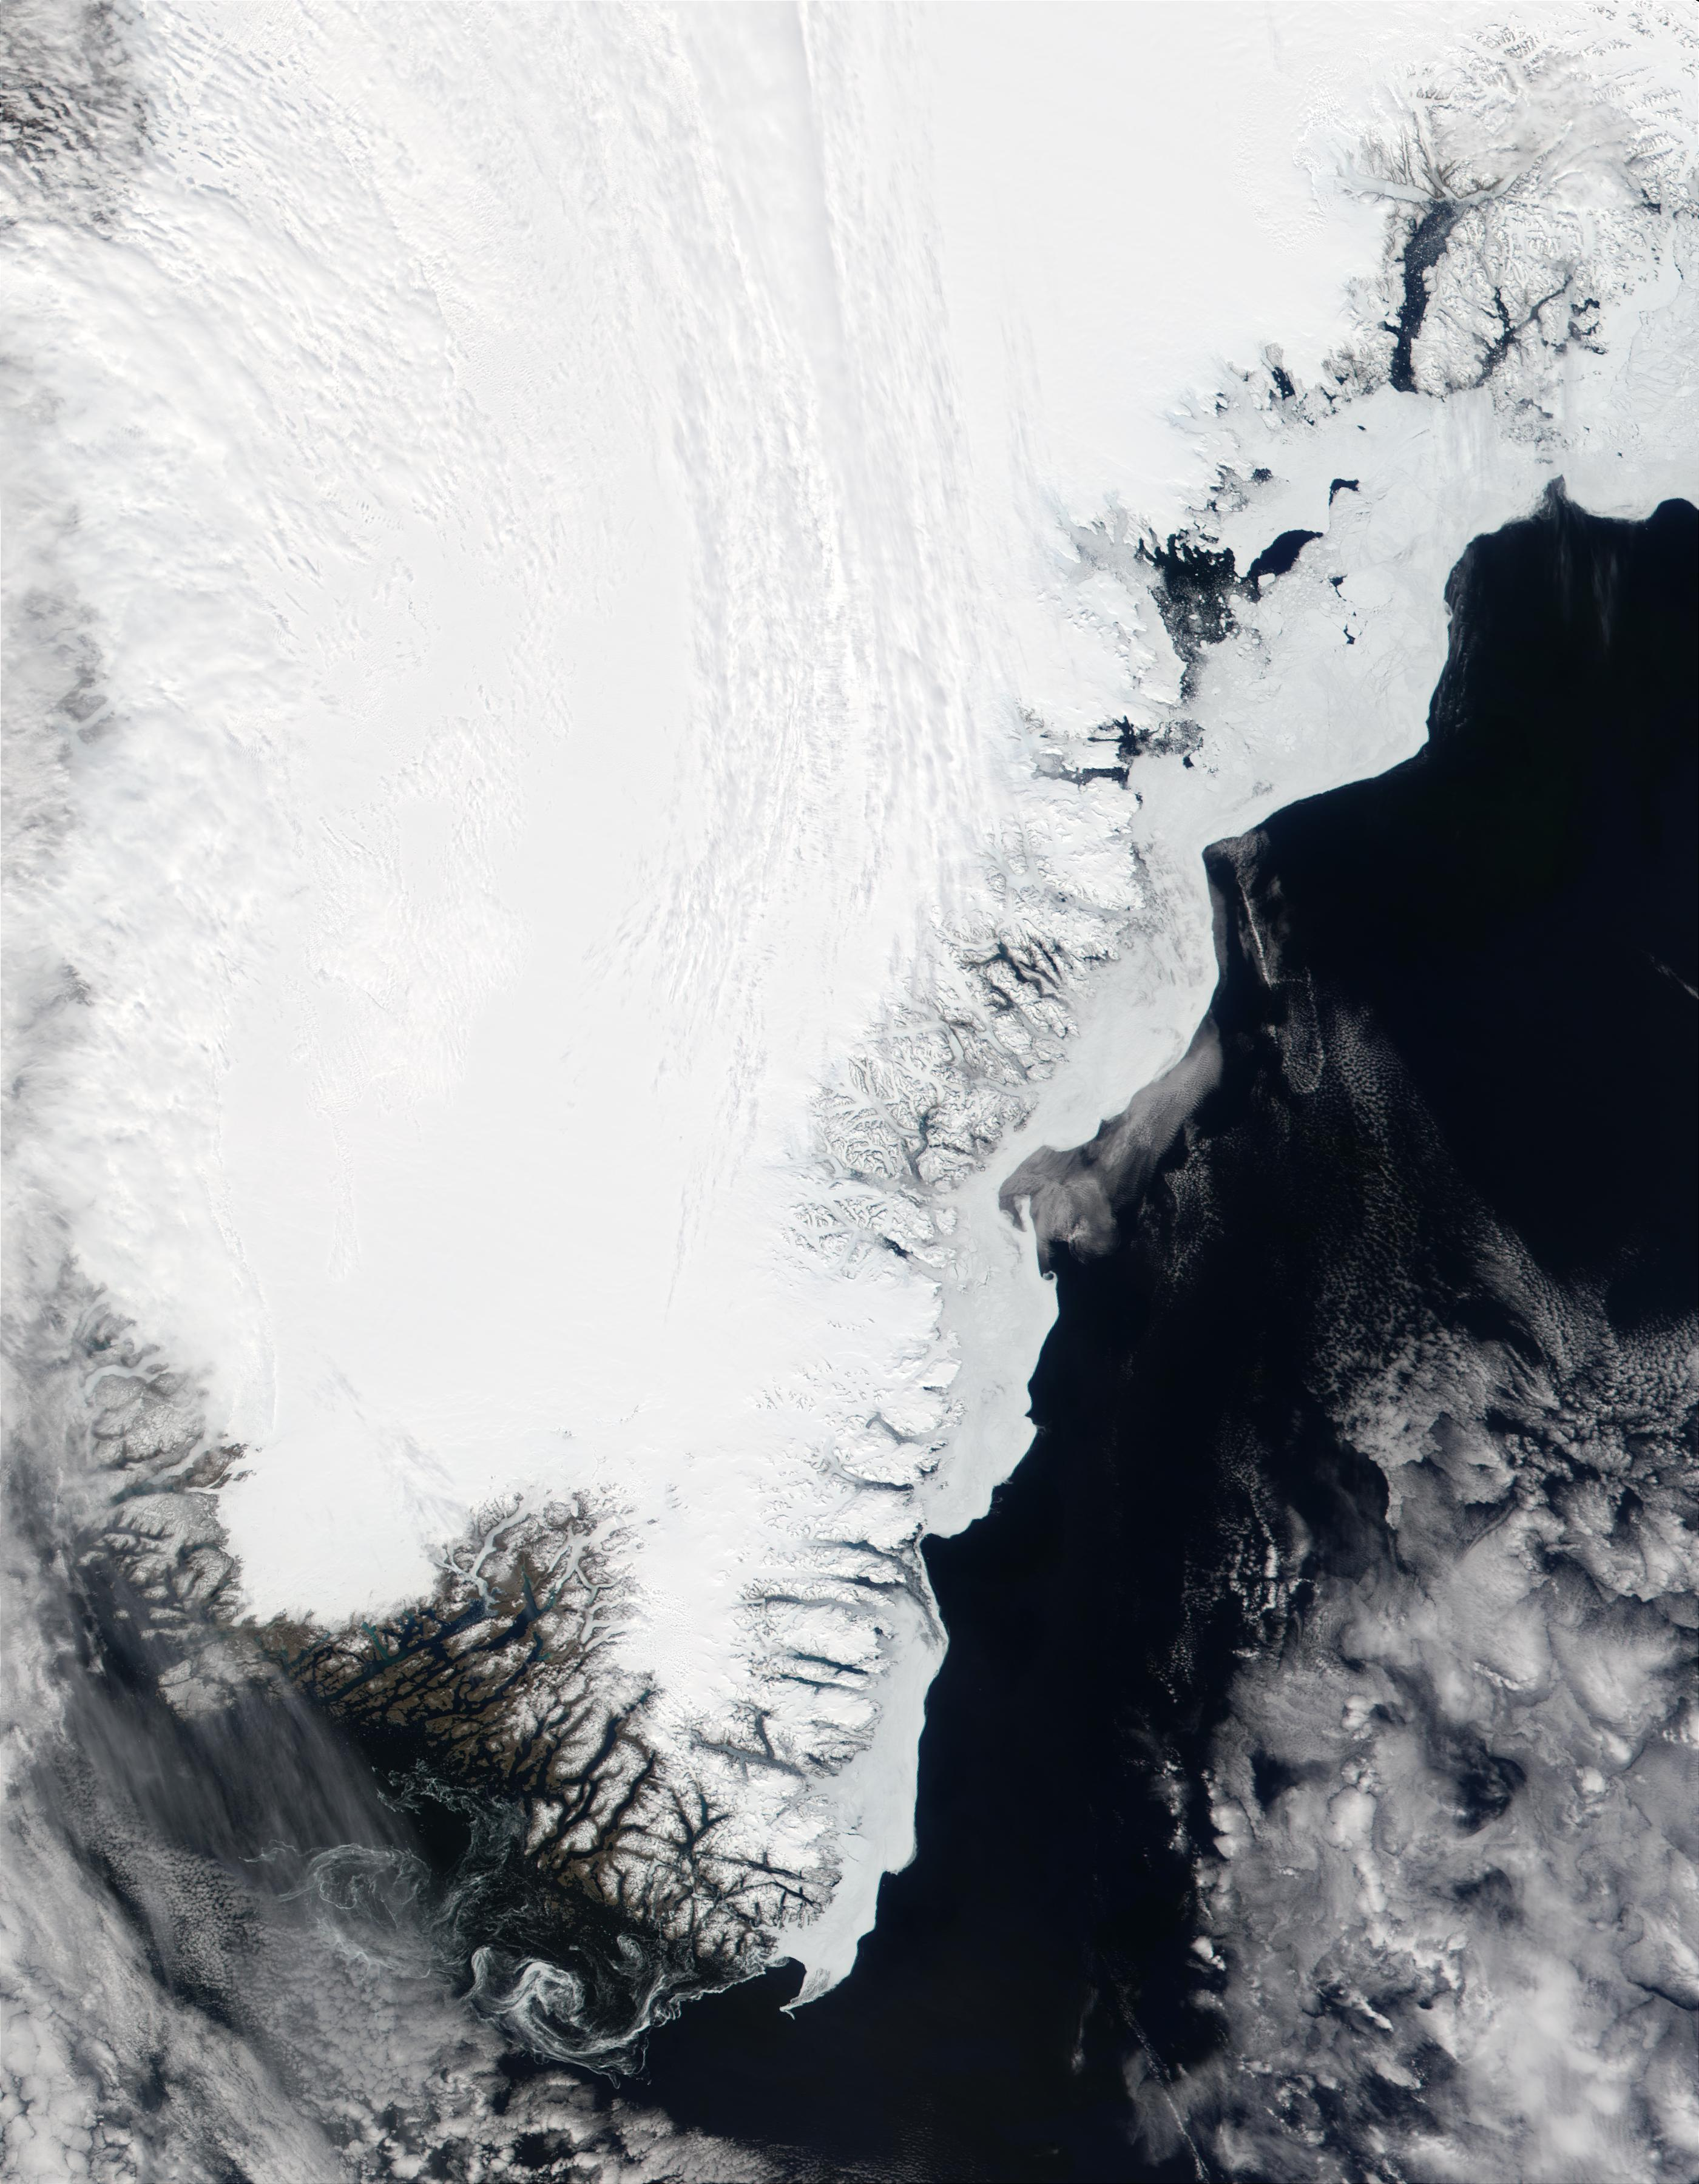 Southern tip of Greenland